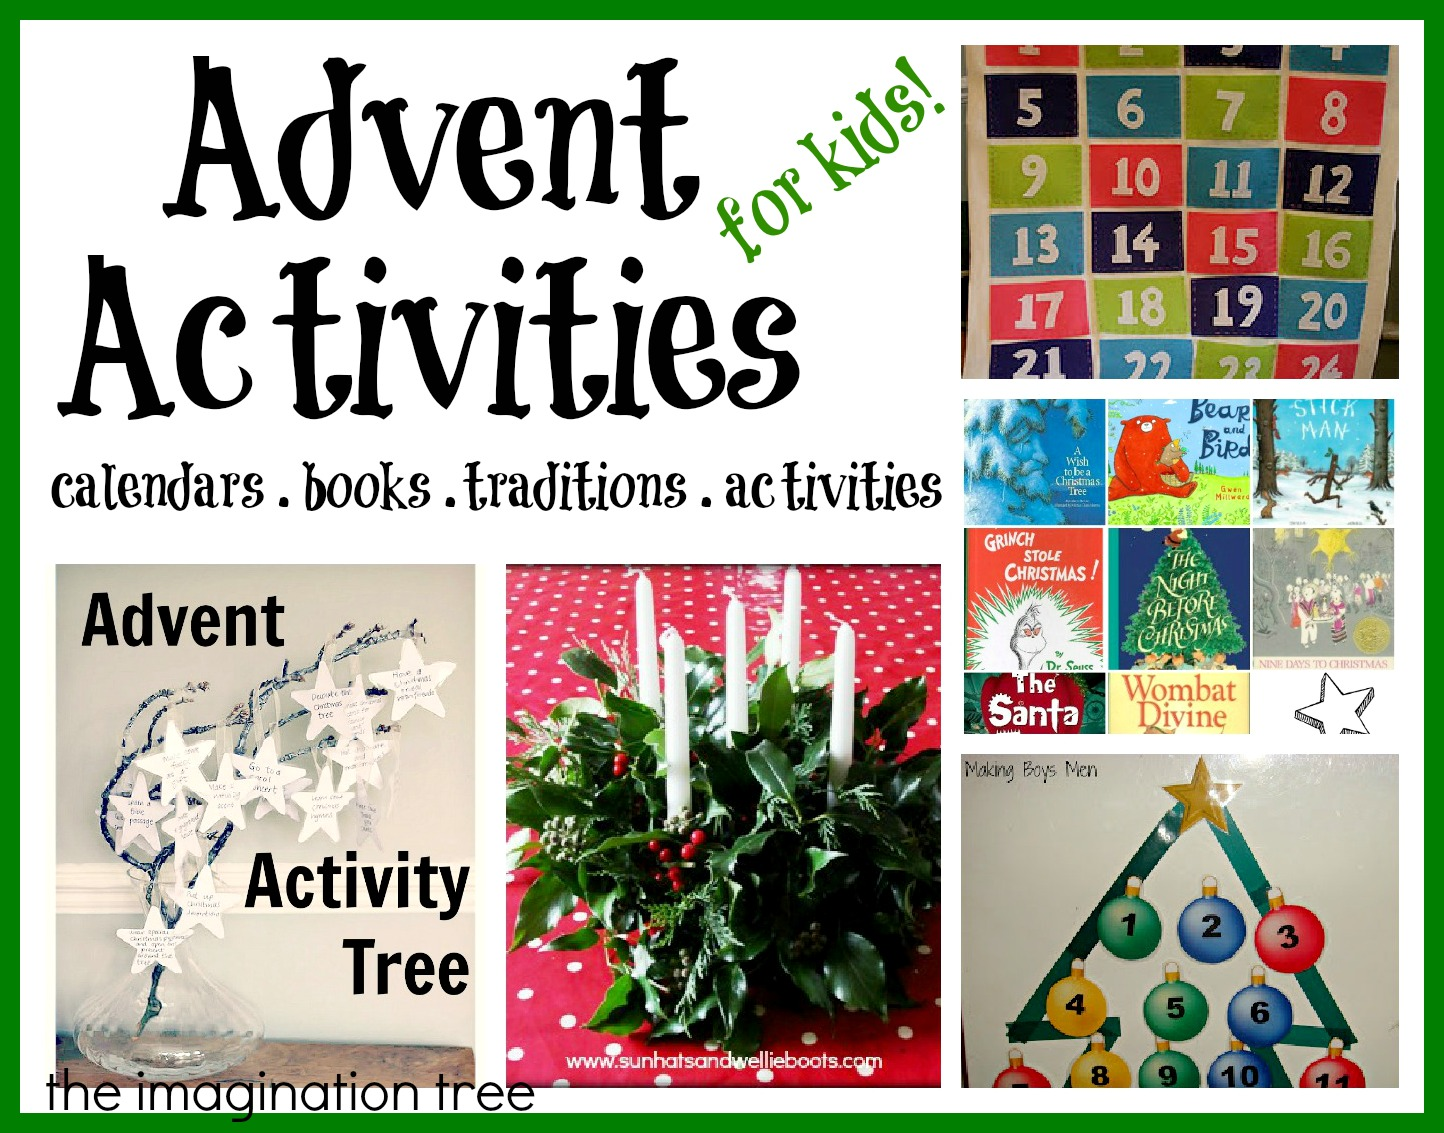 Advent Calendar Ideas Toddlers : Advent activities and calendars for kids it s playtime